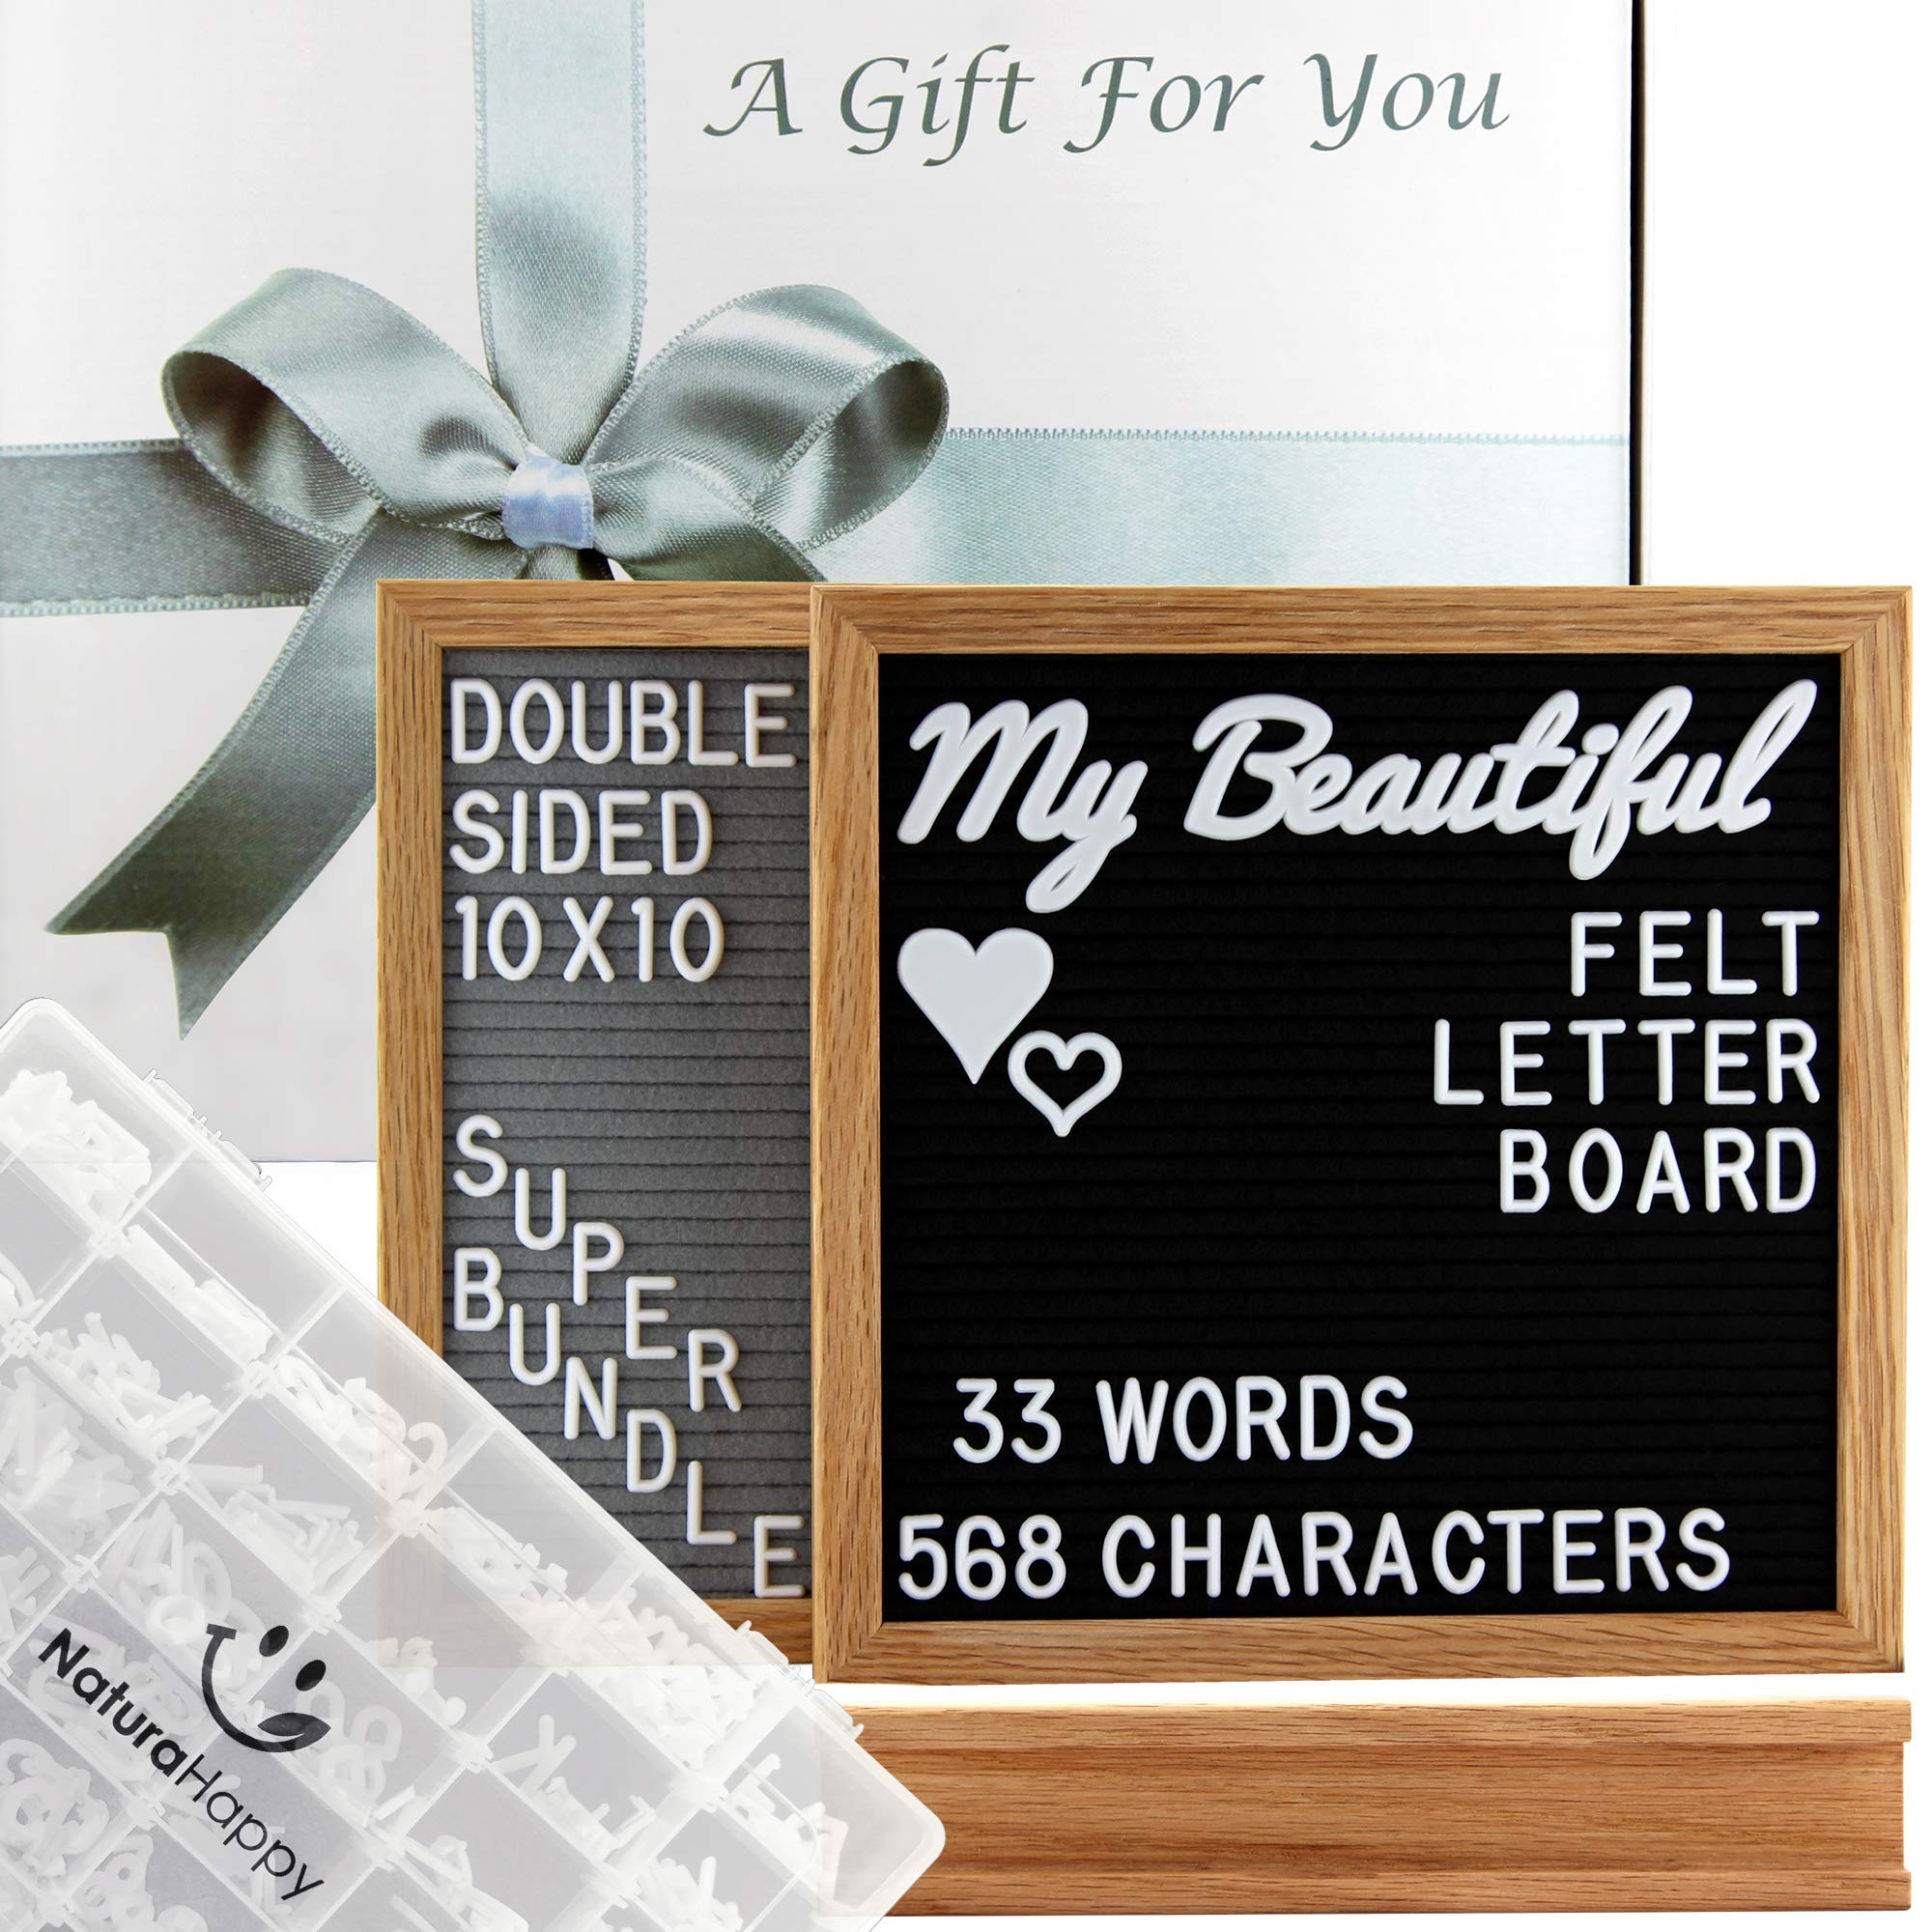 Gray and Black Double Sided Felt Letter Board with Letters 10x10 Inches - Changeable Message Sign - Oak Wood Frame with Stand - 601 White Letters, Words, Emojis, Symbols - Organizer Storage Box